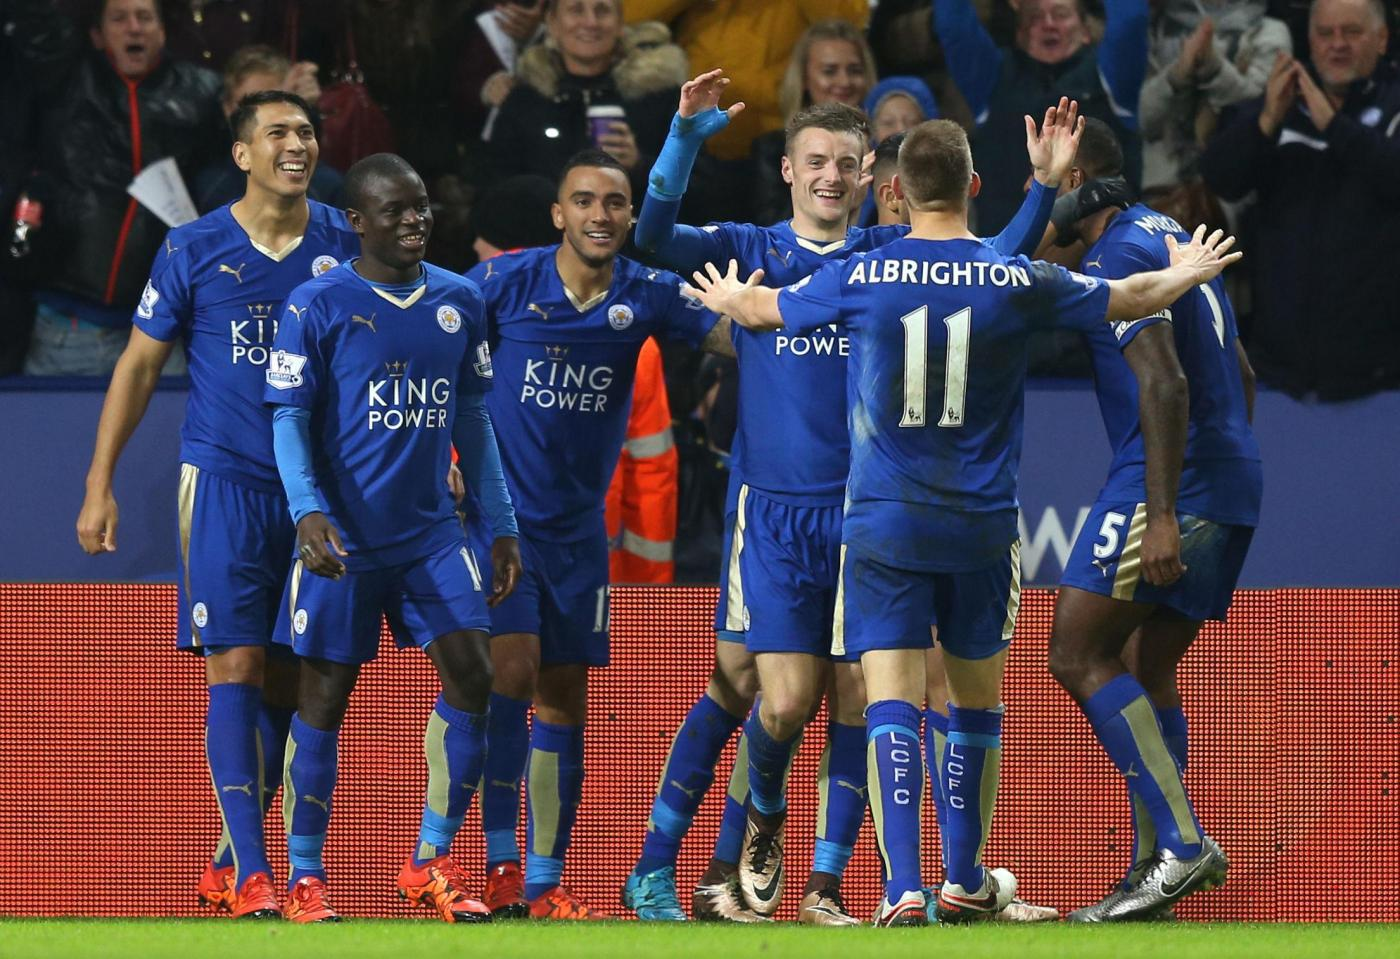 Leicester-Burnley 2 dicembre, analisi e pronostico Premier League giornata 15